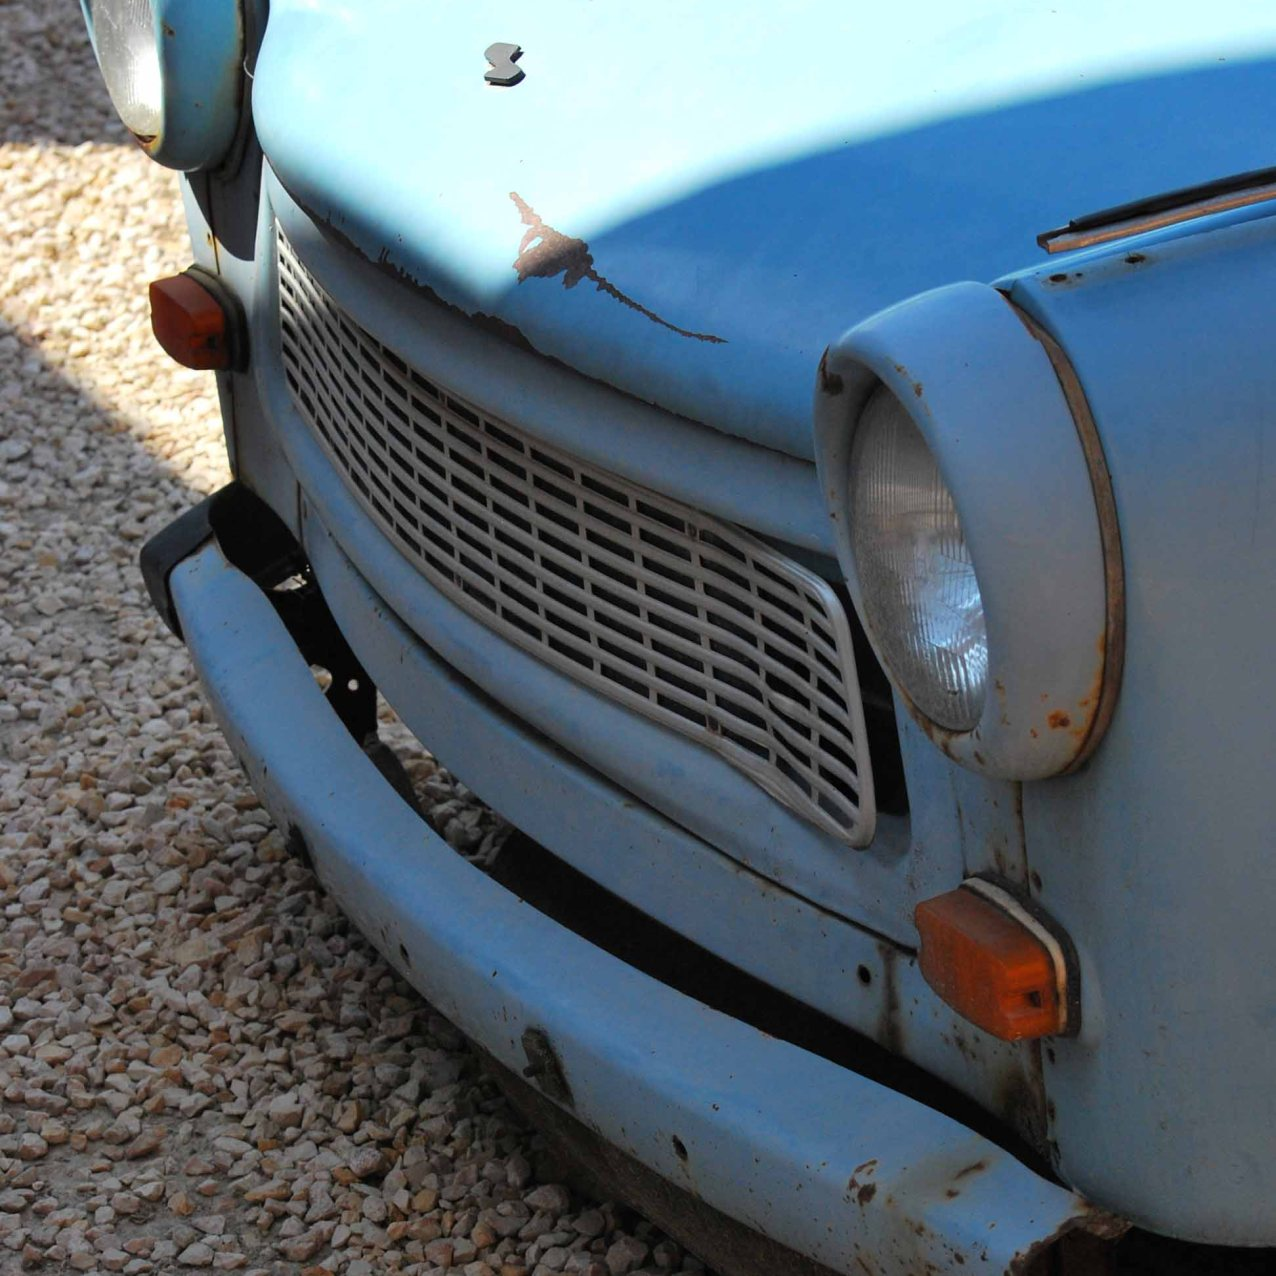 Take some time and explore the East-German Trabant.